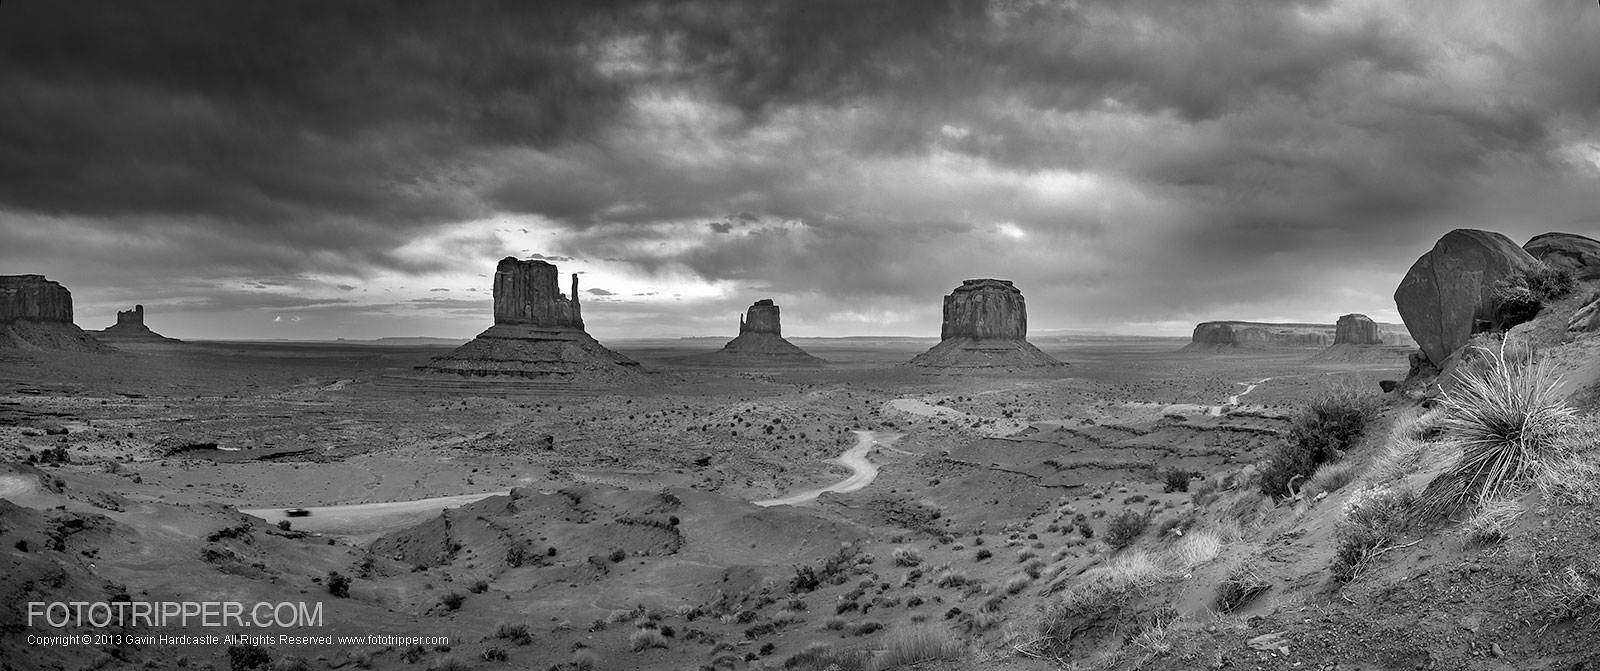 Photoshop Tutorial - How to Make Dramatic Black & White Landscapes